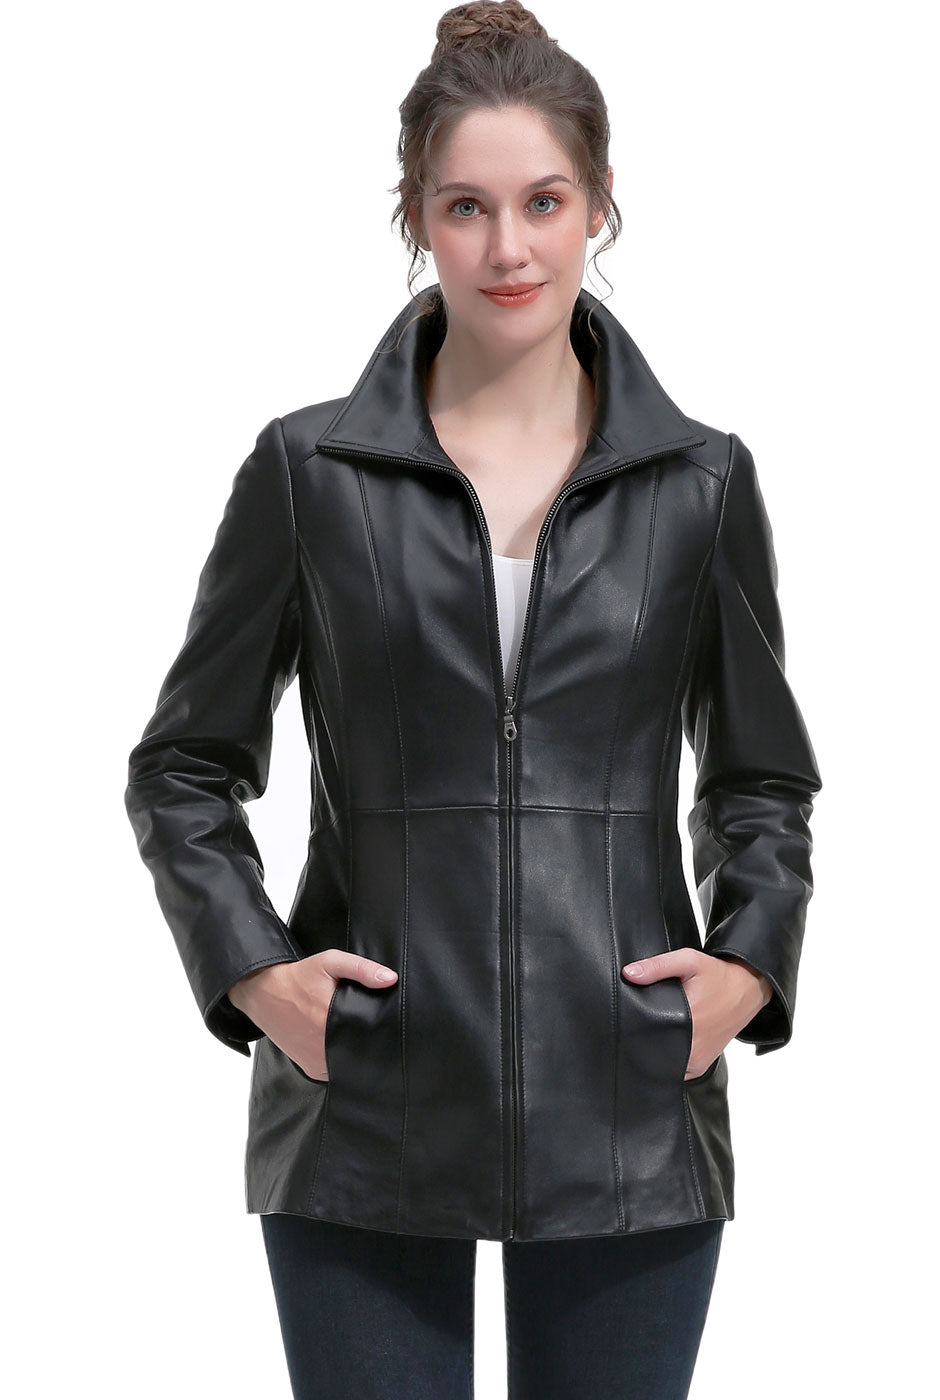 BGSD Women's New Zealand Lambskin Leather Jacket